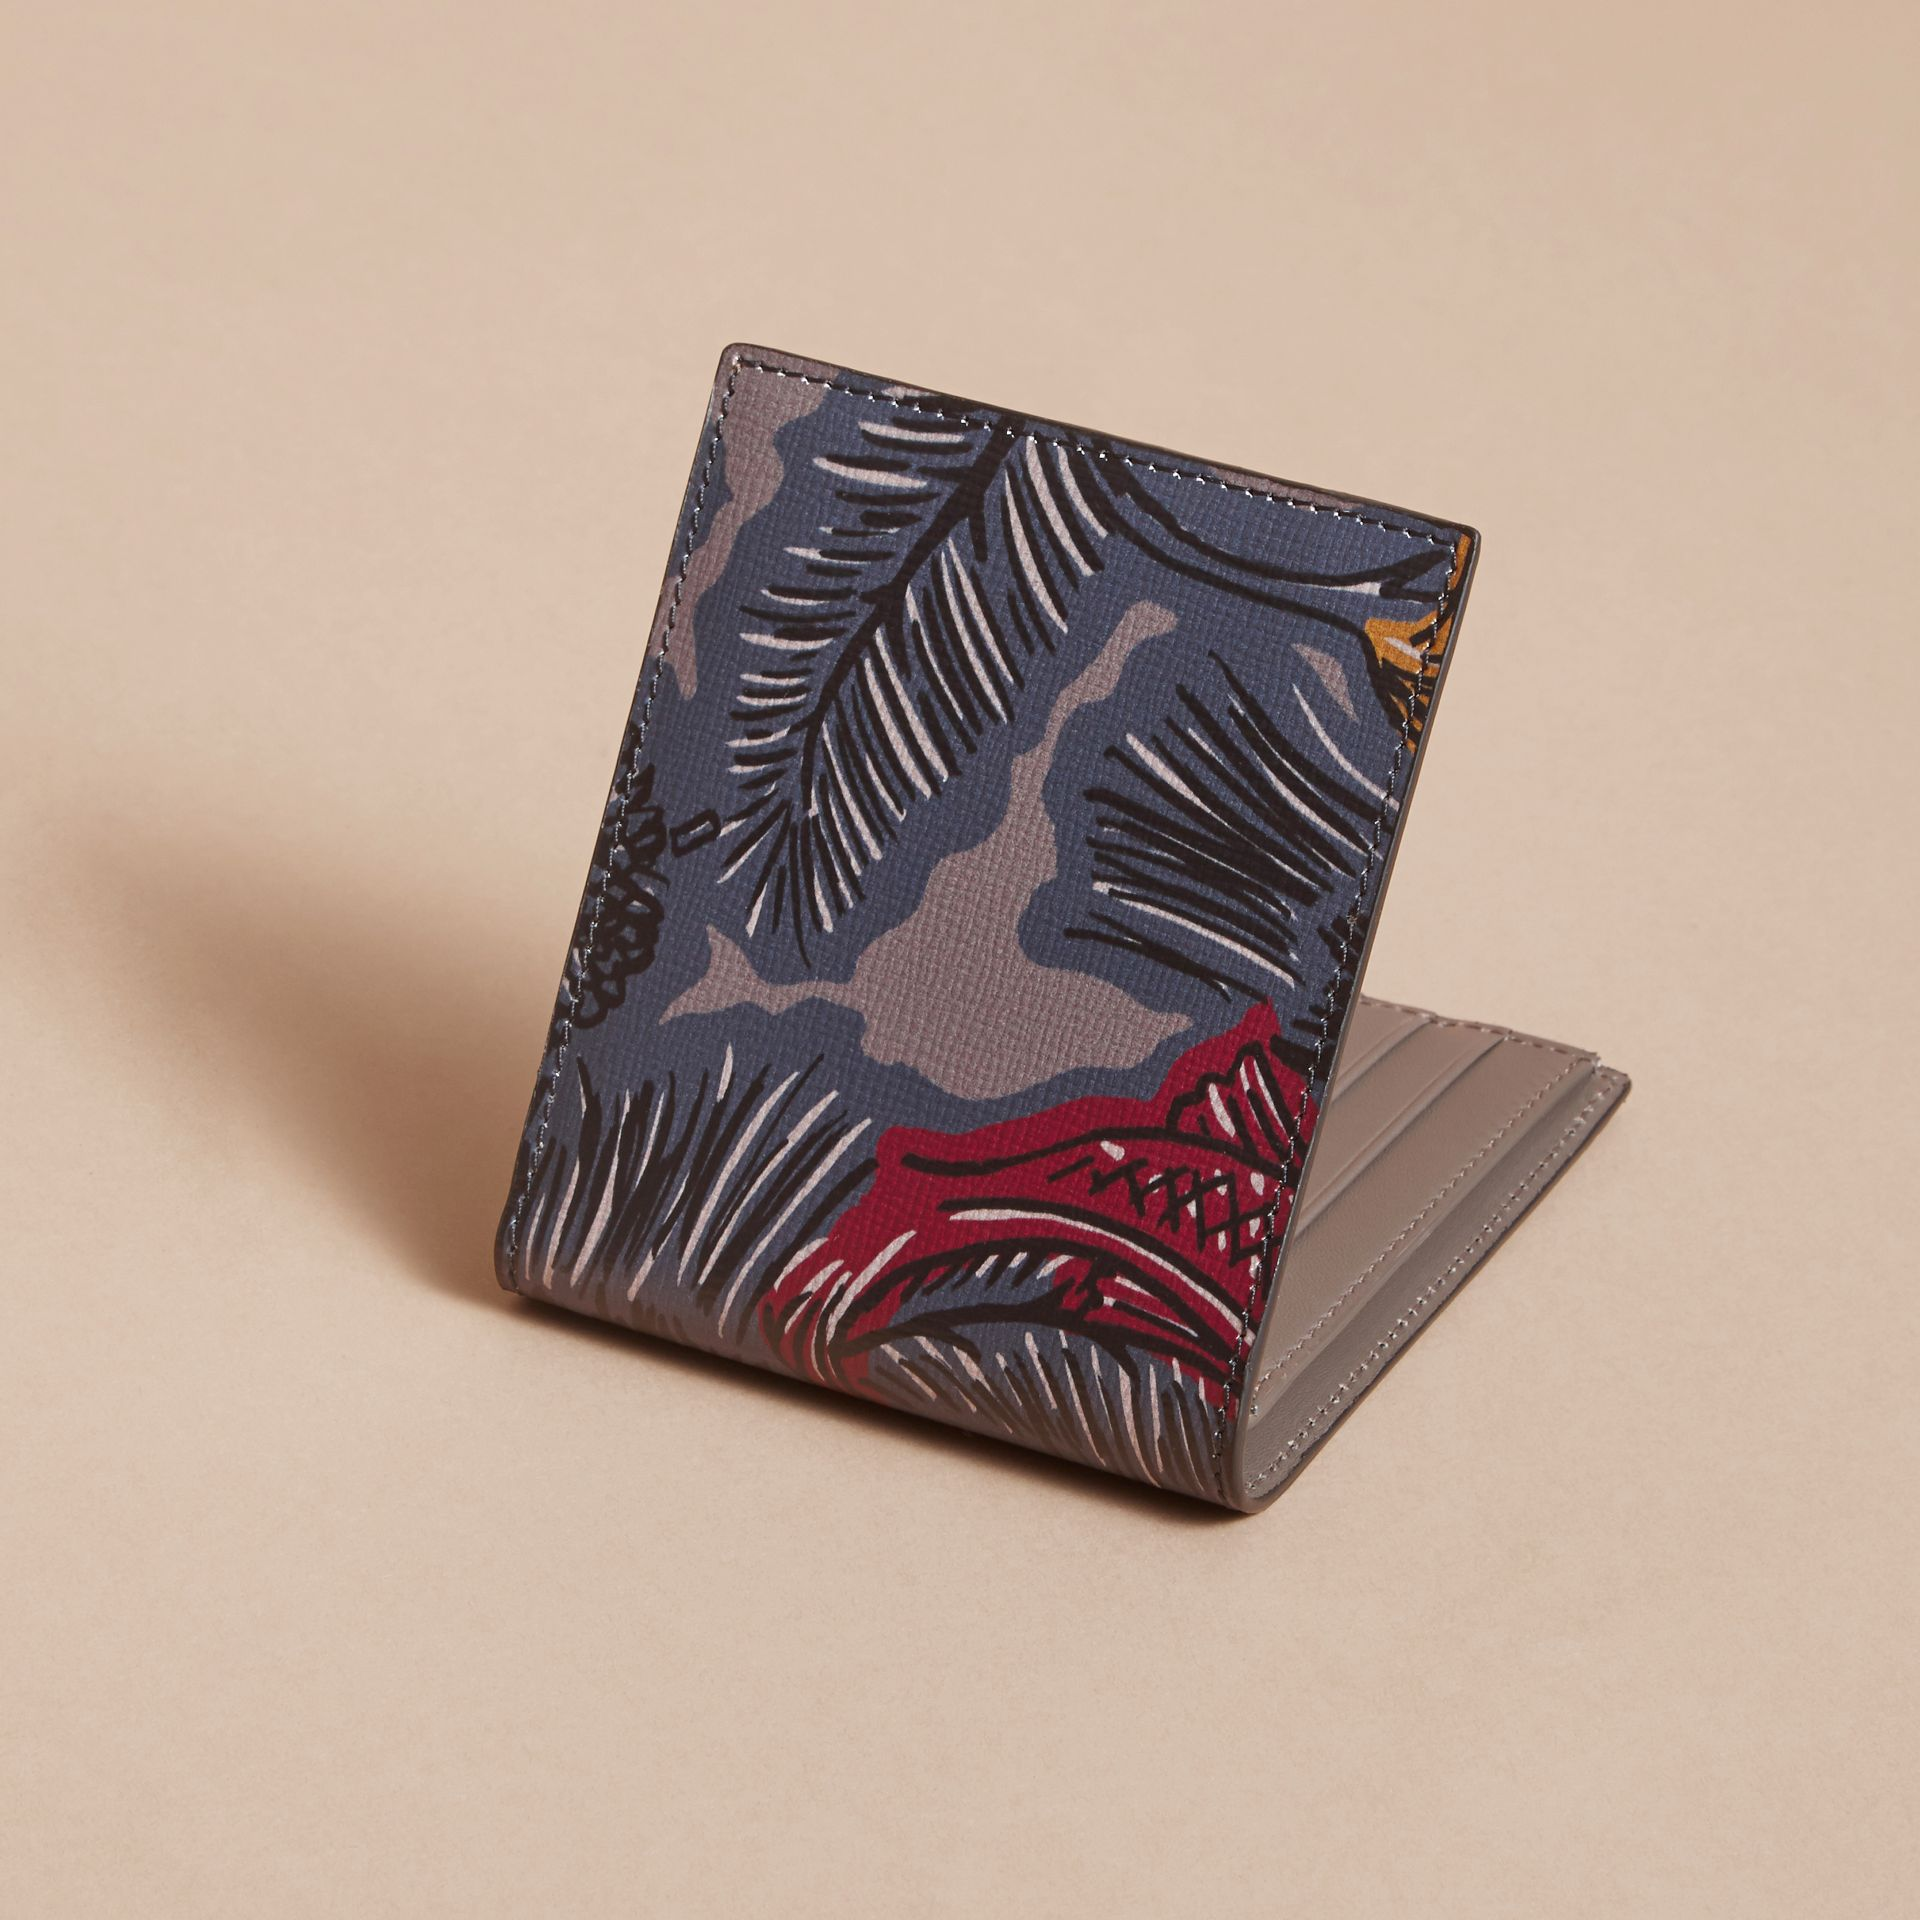 Beasts Print Leather Folding Wallet in Navy Grey - Men | Burberry - gallery image 3